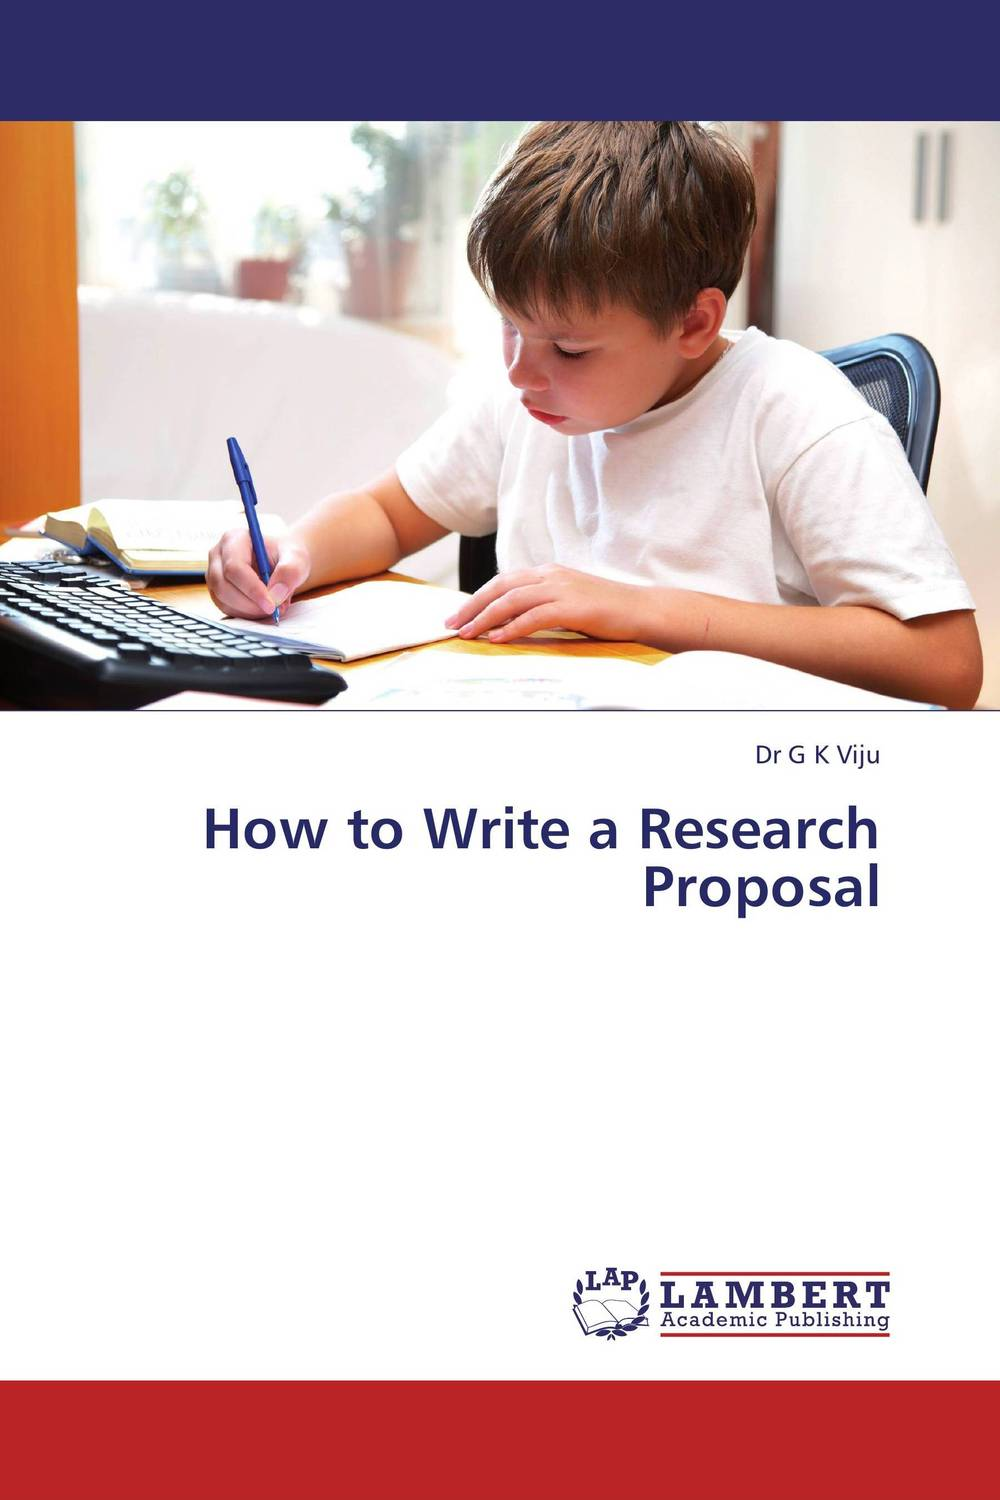 How to Write a Research Proposal тетрадь на скрепке printio i want to write you a song one direction mitam